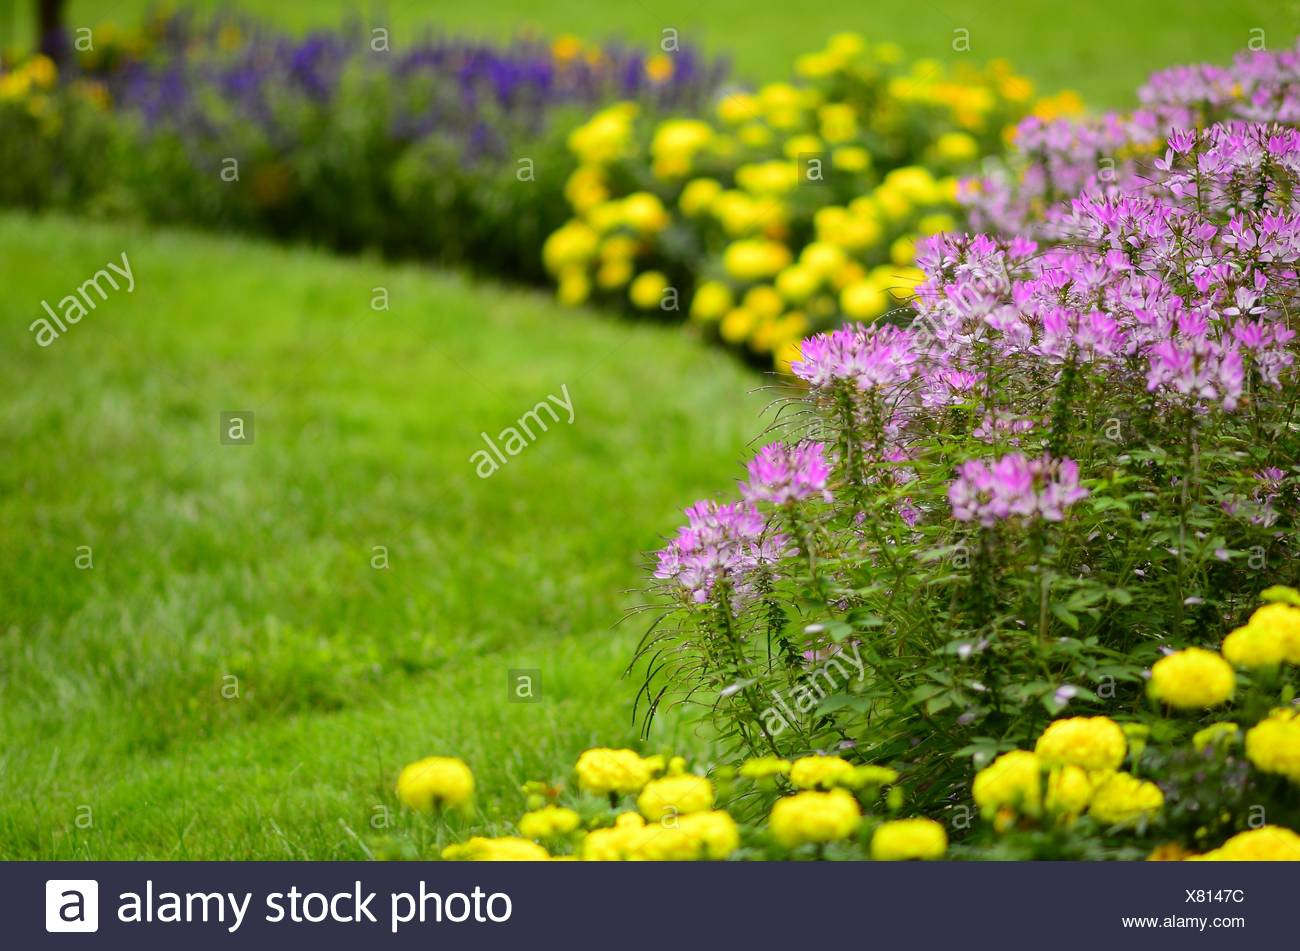 Cleome flowers in soft focus watch over the lawn and garden, Pennsylvania, USA. Stock Photo